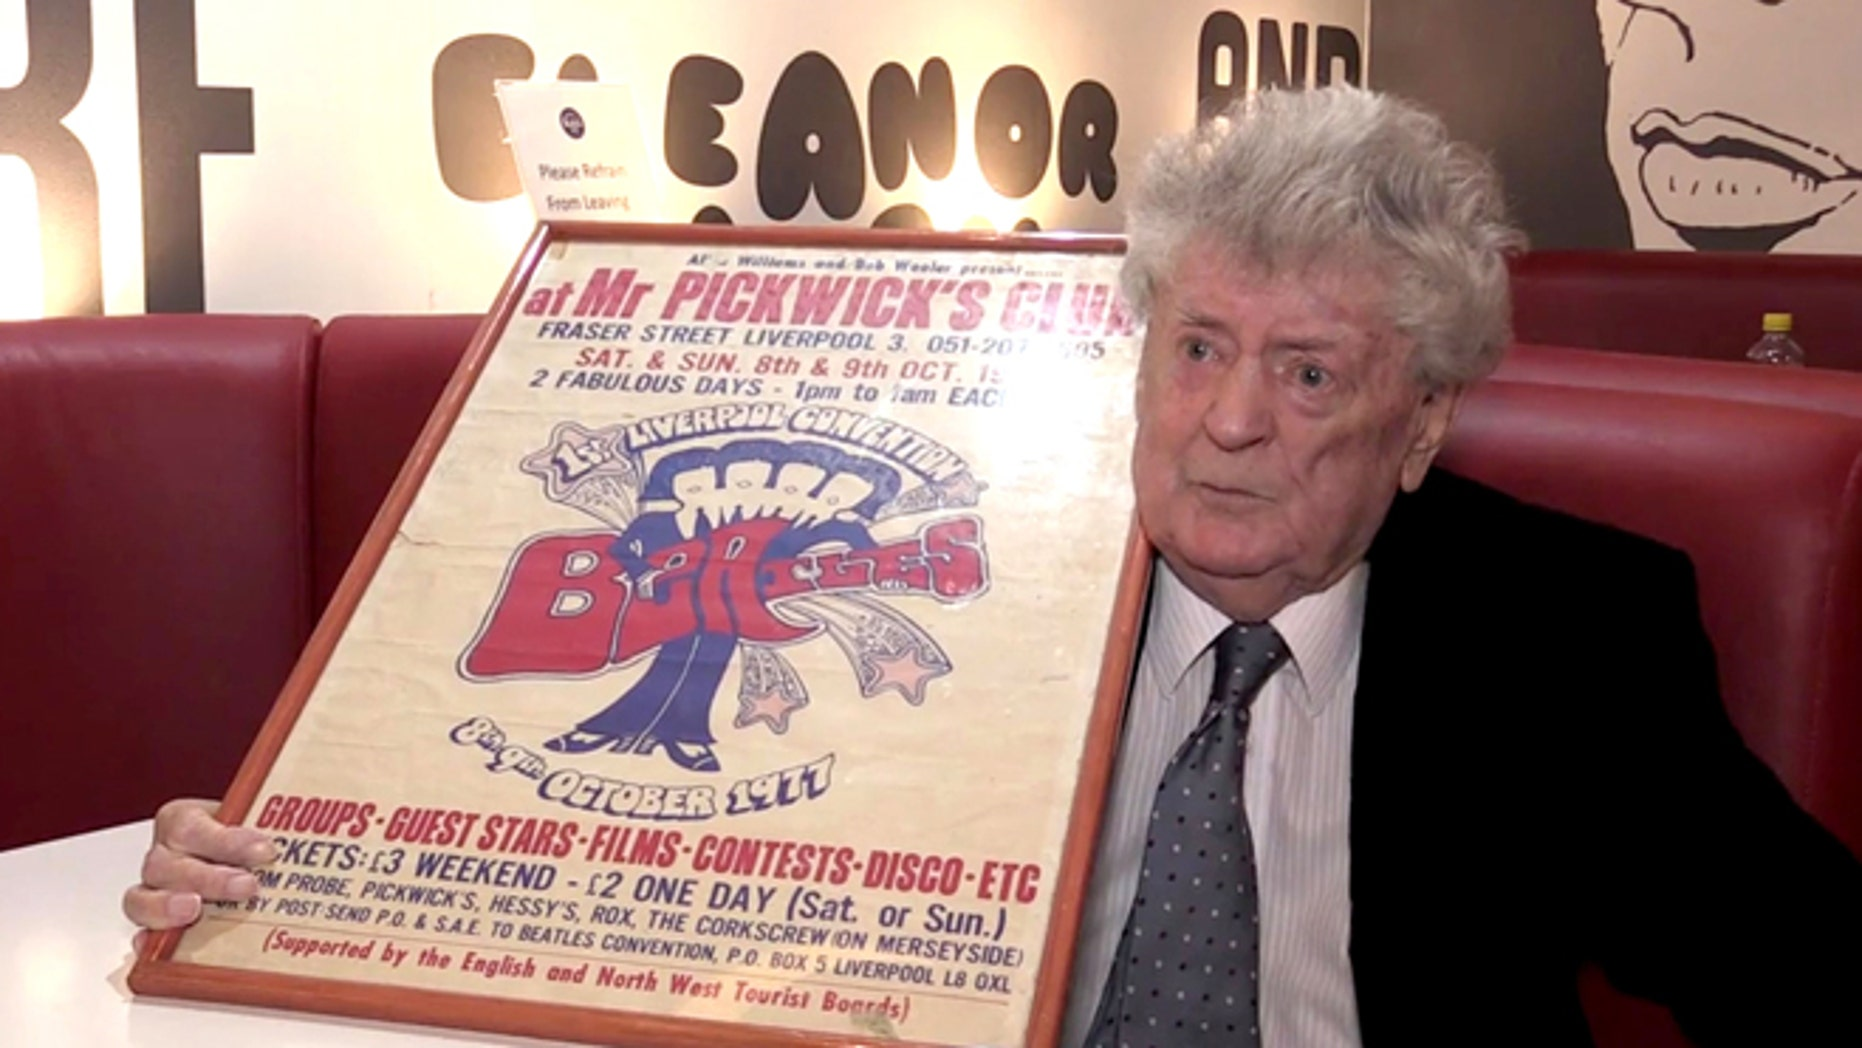 Allan Williams, who worked with the Beatles early in their careers, dies at 86.